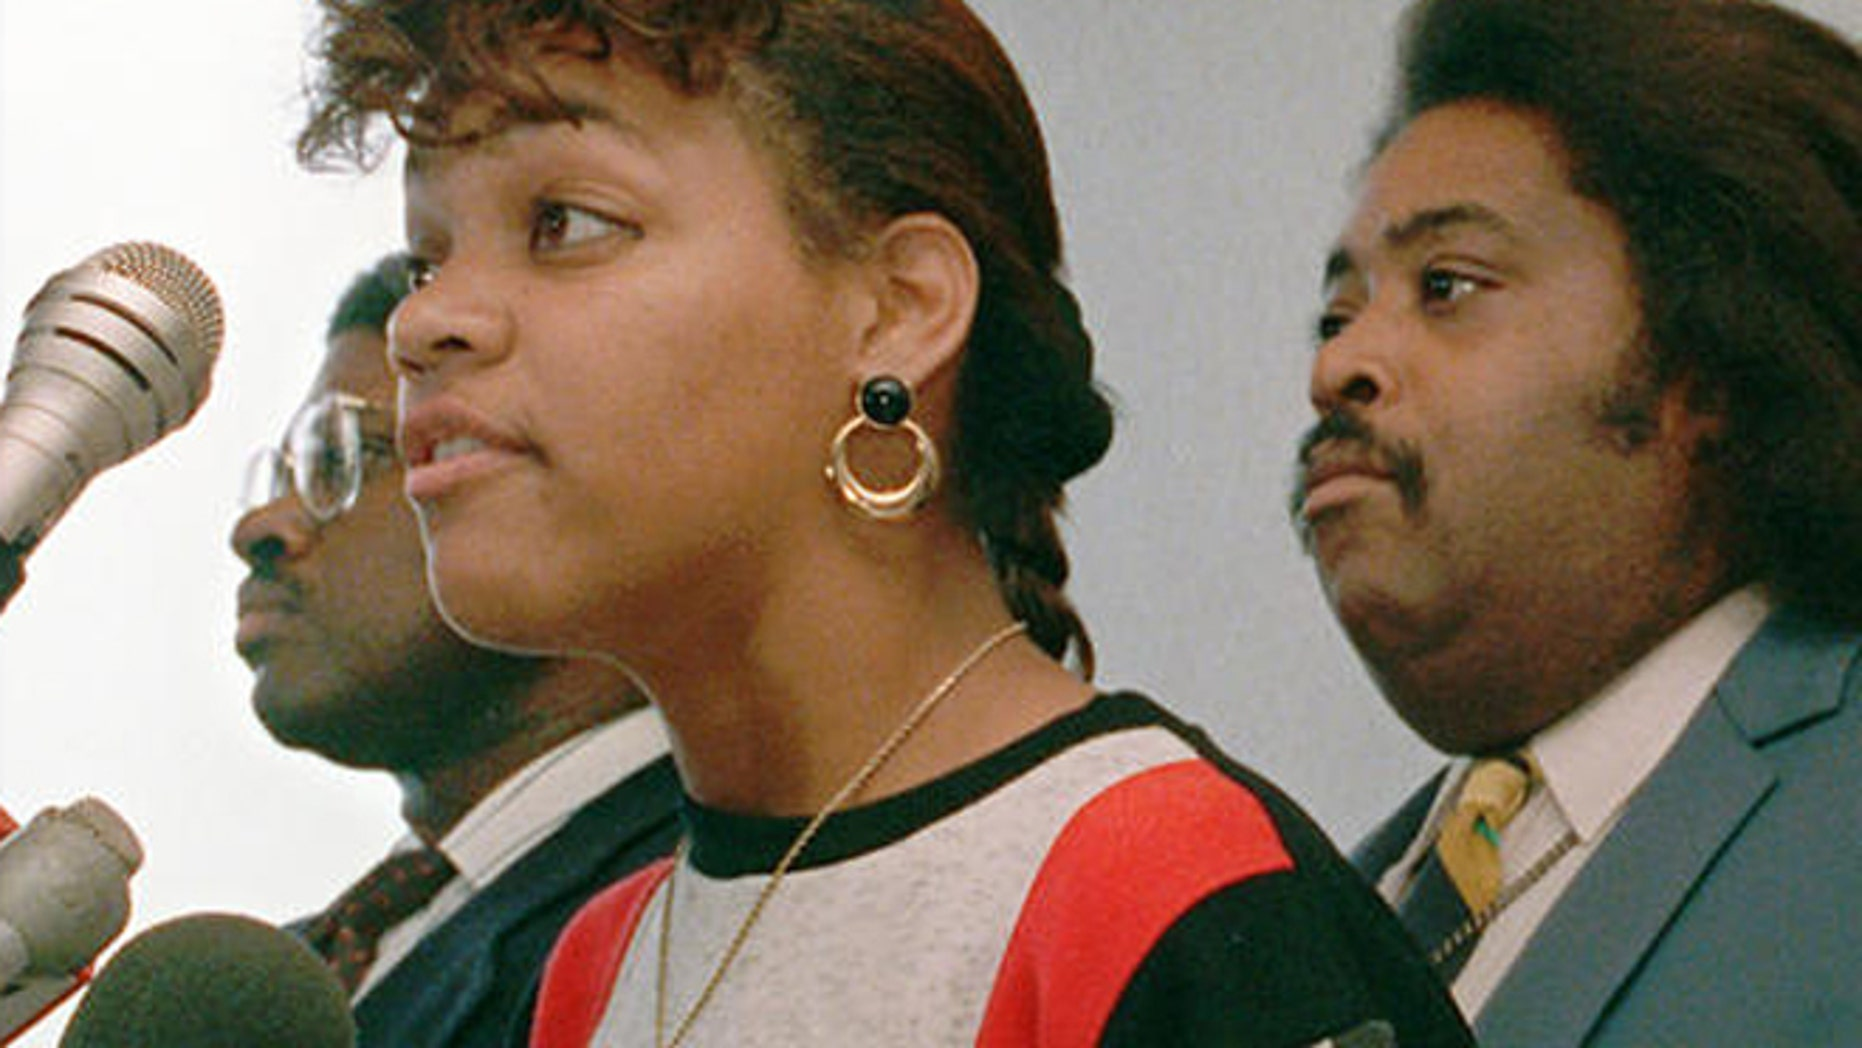 Sept. 28, 1988: Tawana Brawley is flanked by attorney Alton Maddox, left, and the Rev. Al Sharpton as she faces the media.